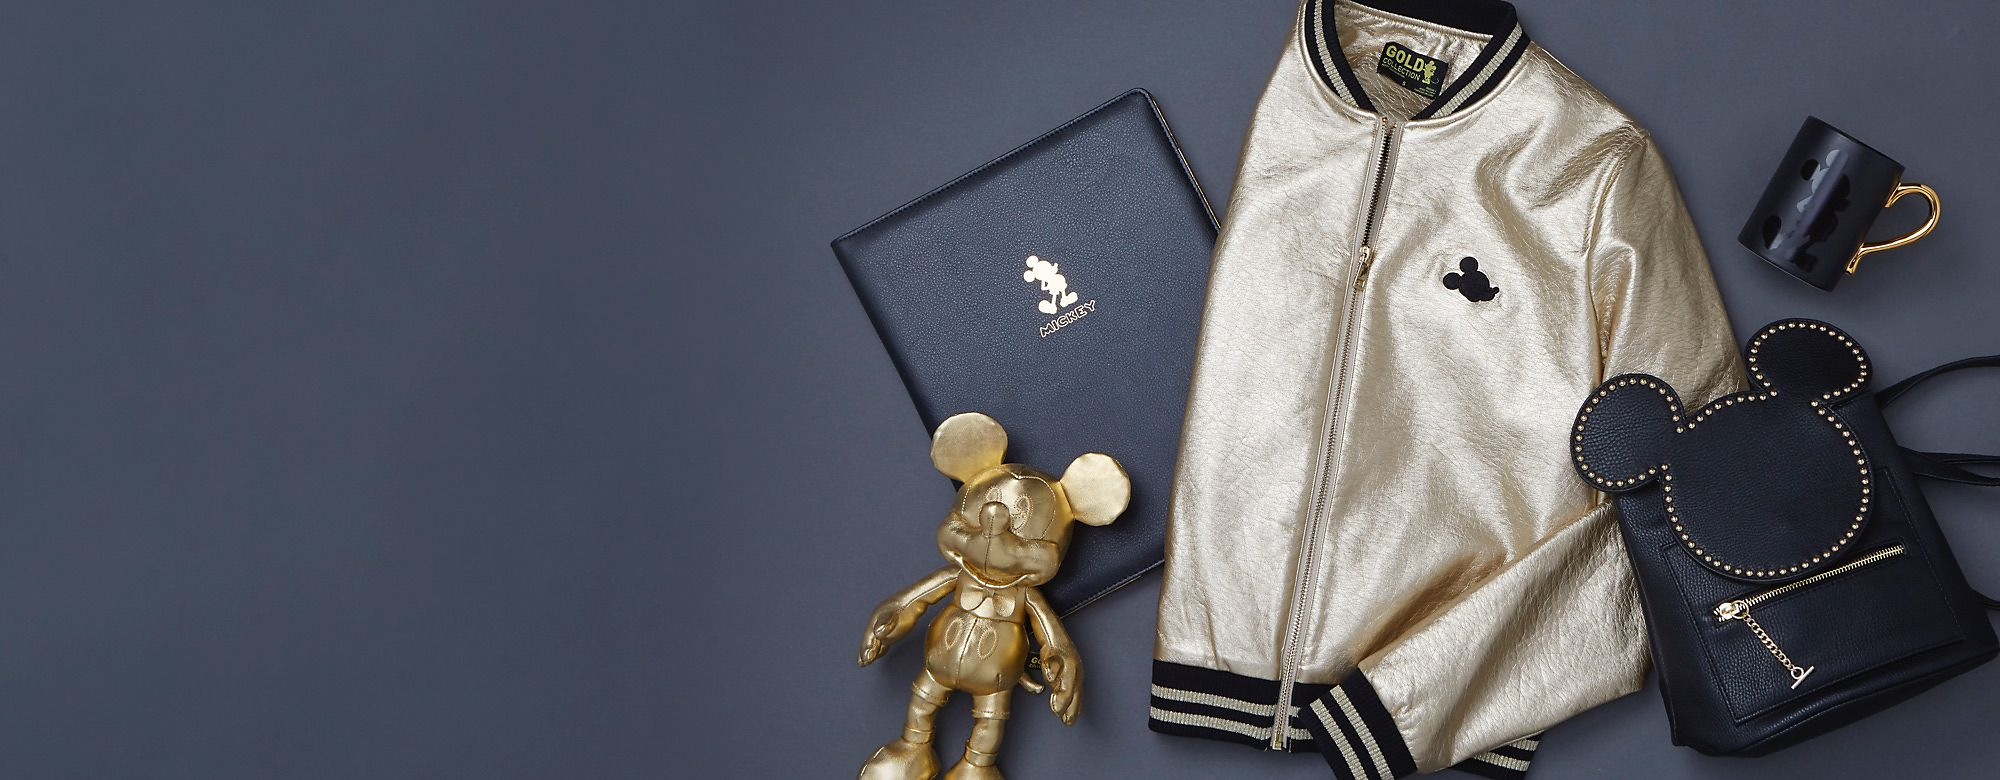 Going for Gold Explore our range of Mickey items to celebrate 90 years SHOP ALL